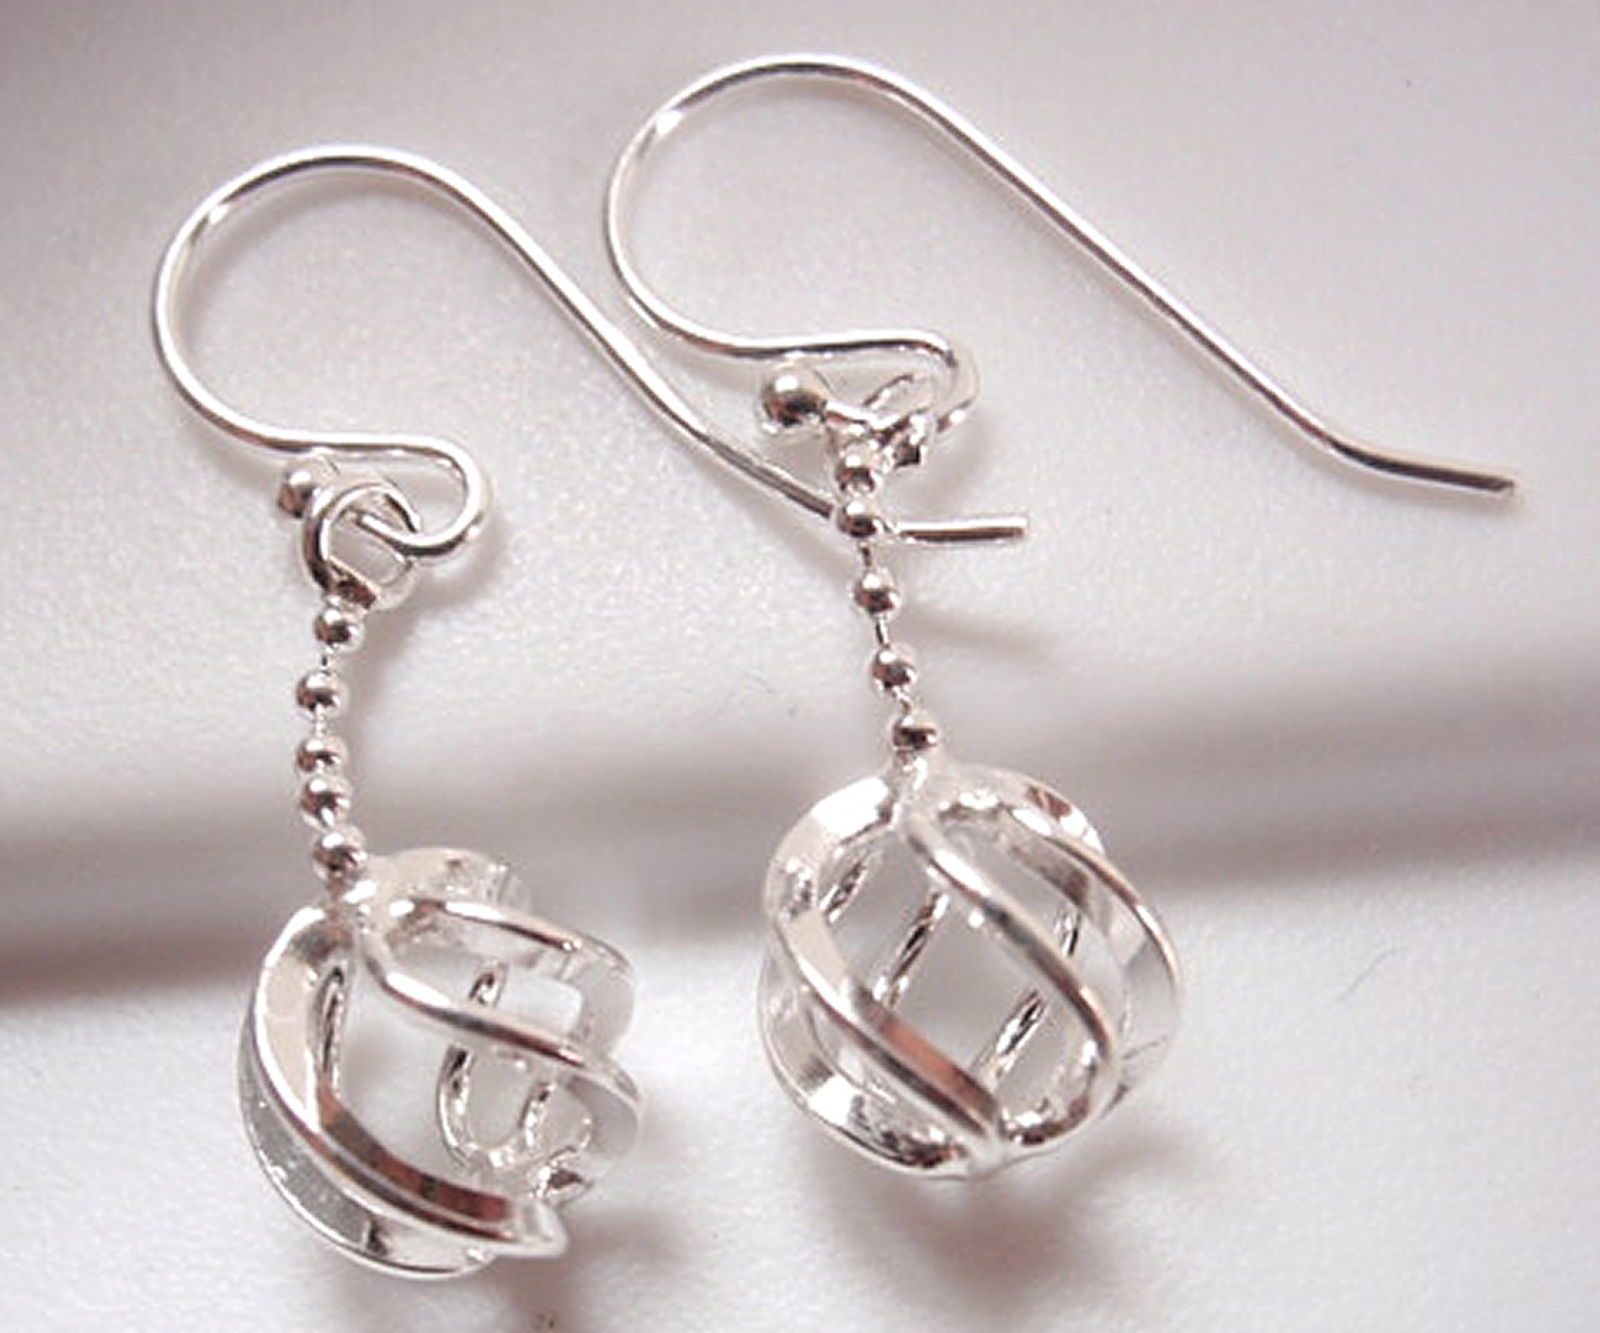 Globe on Chain Earrings 925 Sterling Silver Dangle Corona Sun Jewelry - $9.89